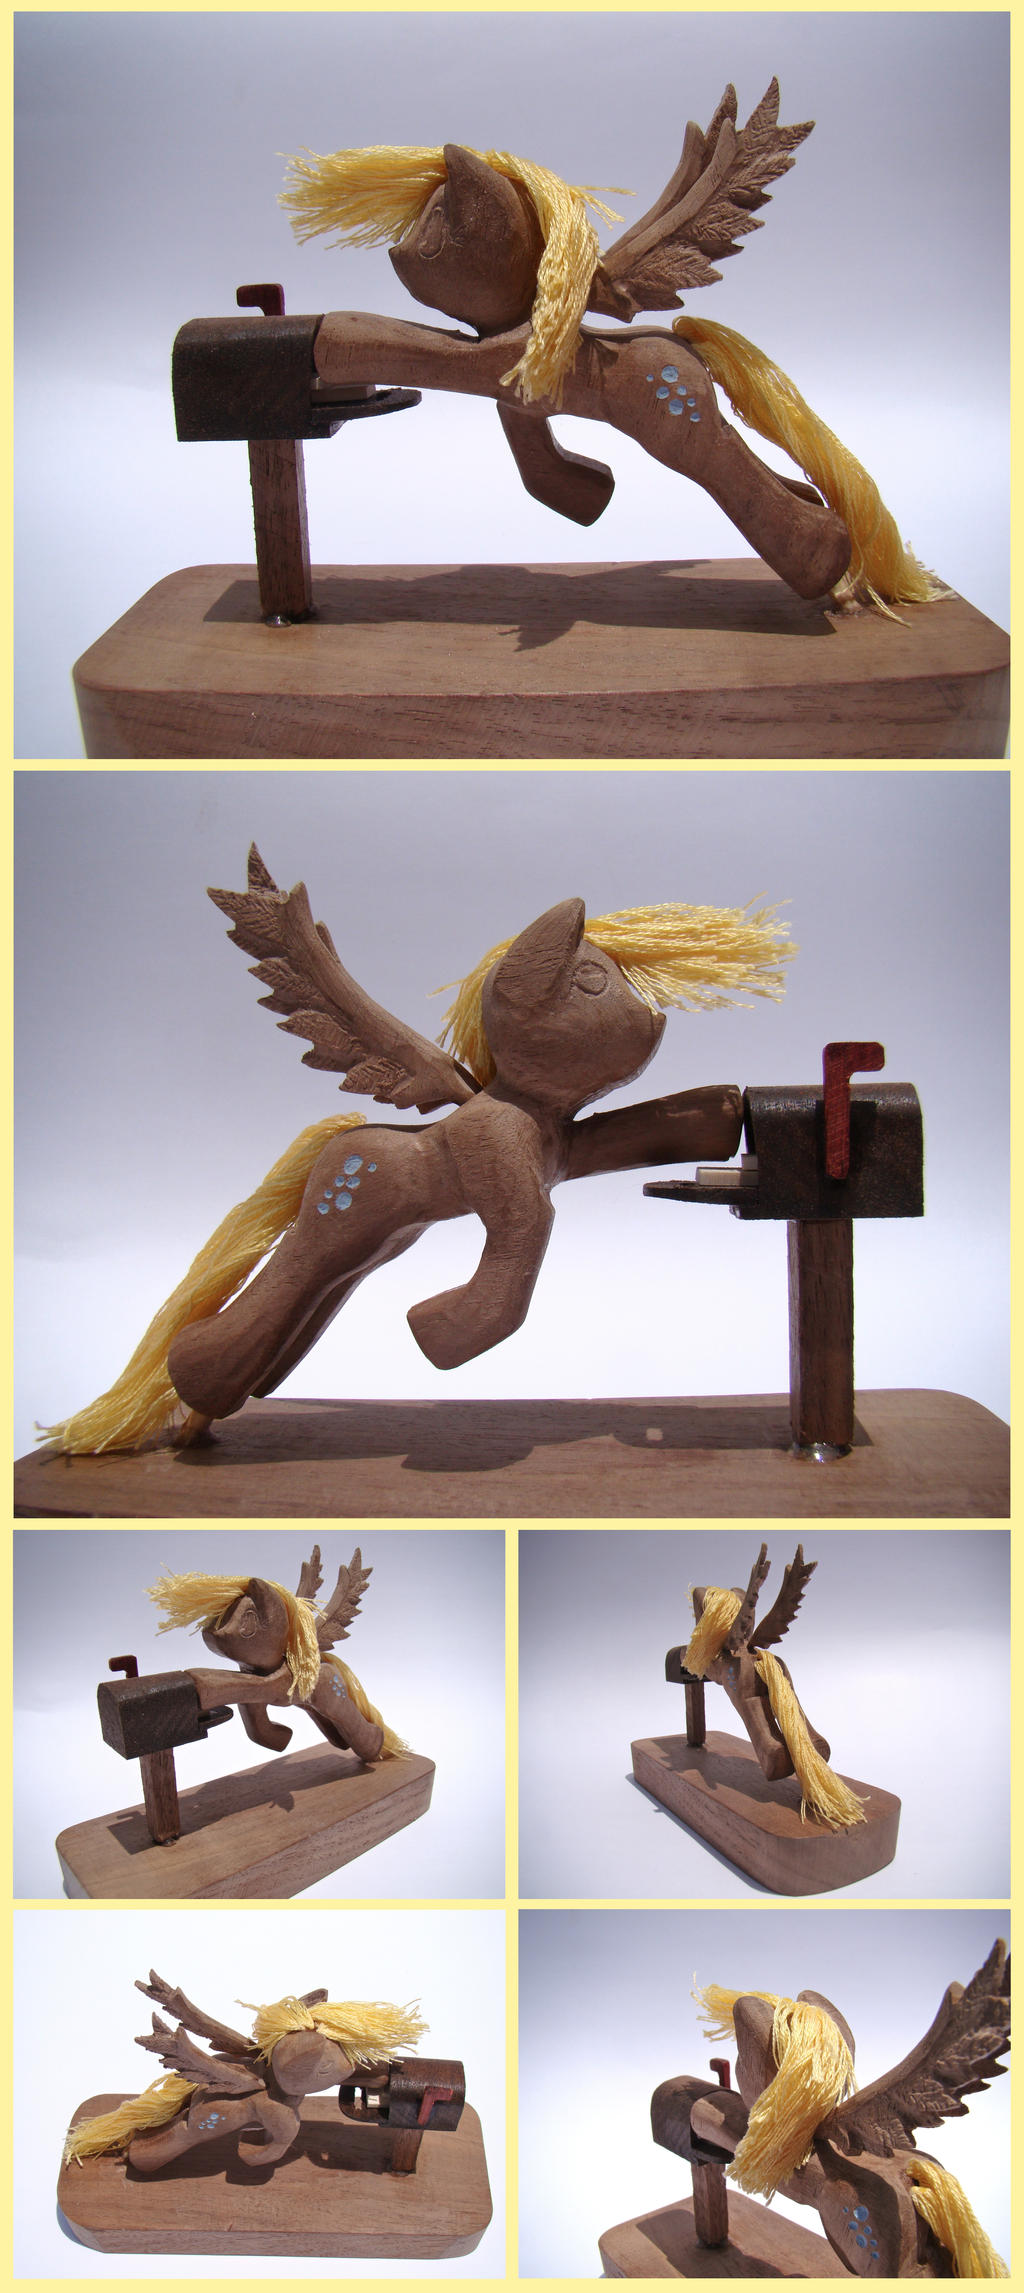 Derpy Hooves Woodwork: Post Haste by xofox